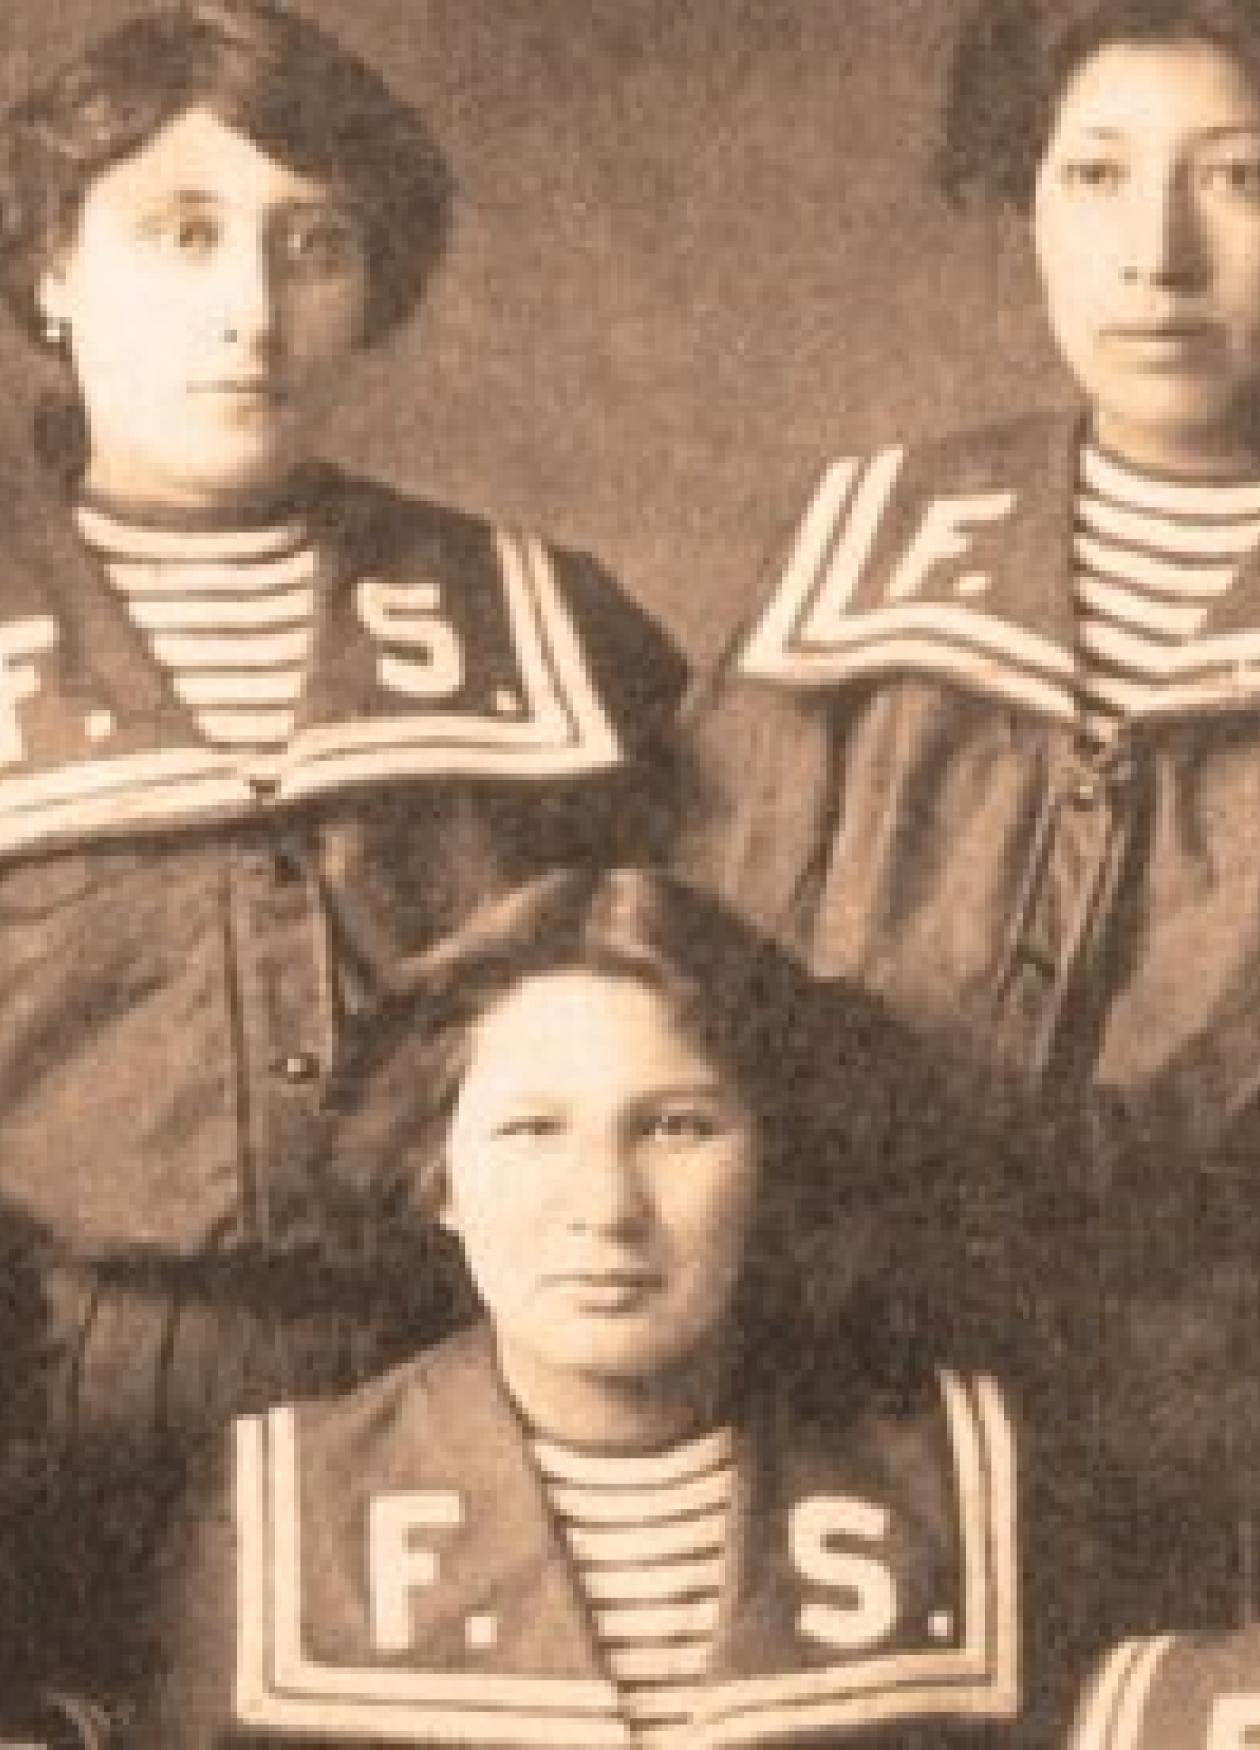 Sepia-colored photo of a team of women basketball players.